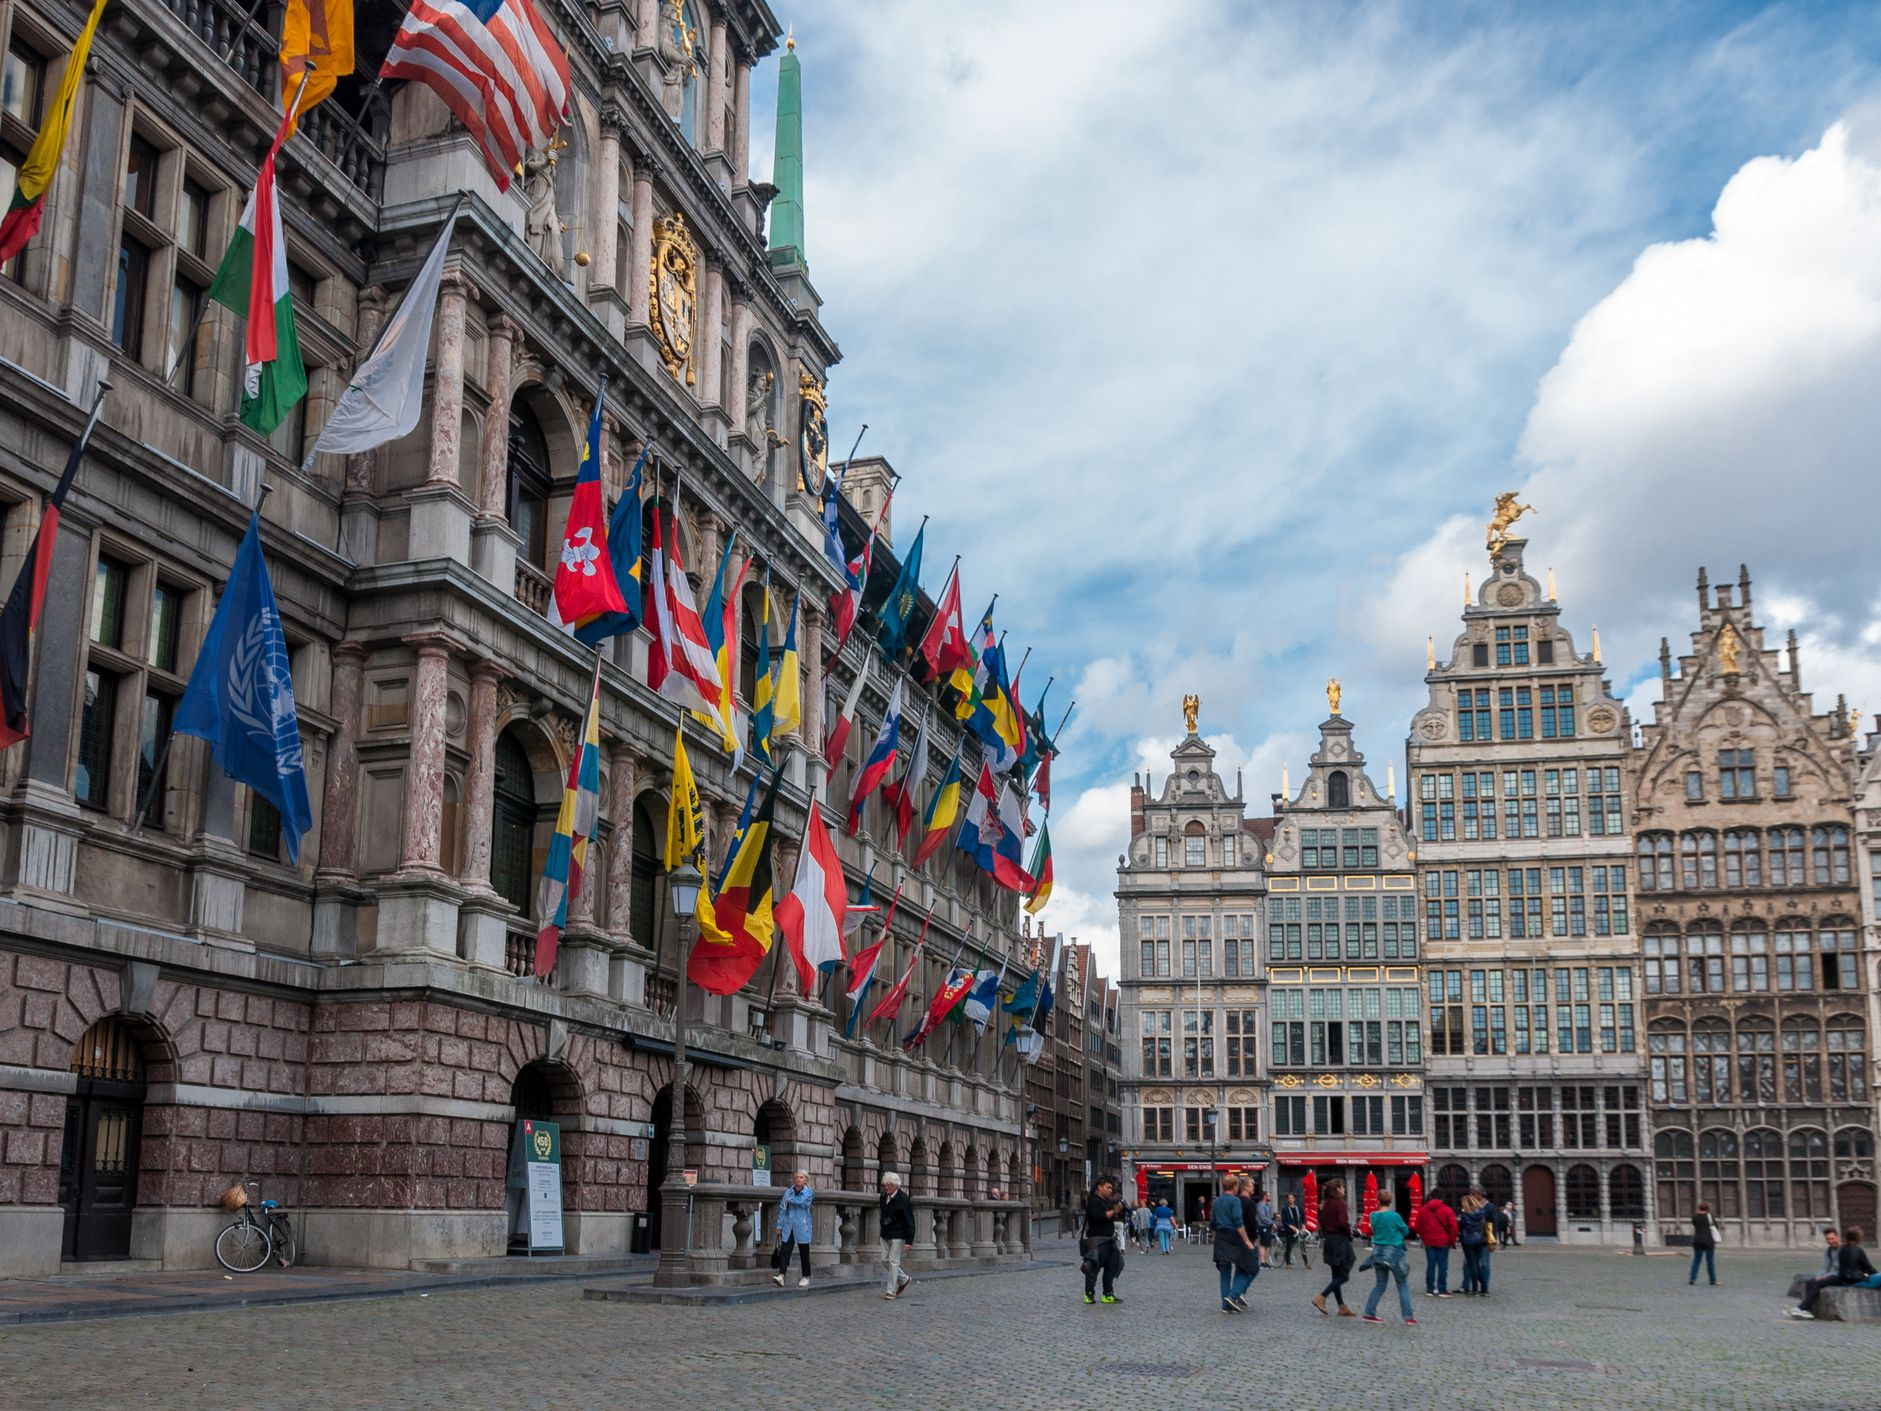 The Top 10 Things To Do In Antwerp